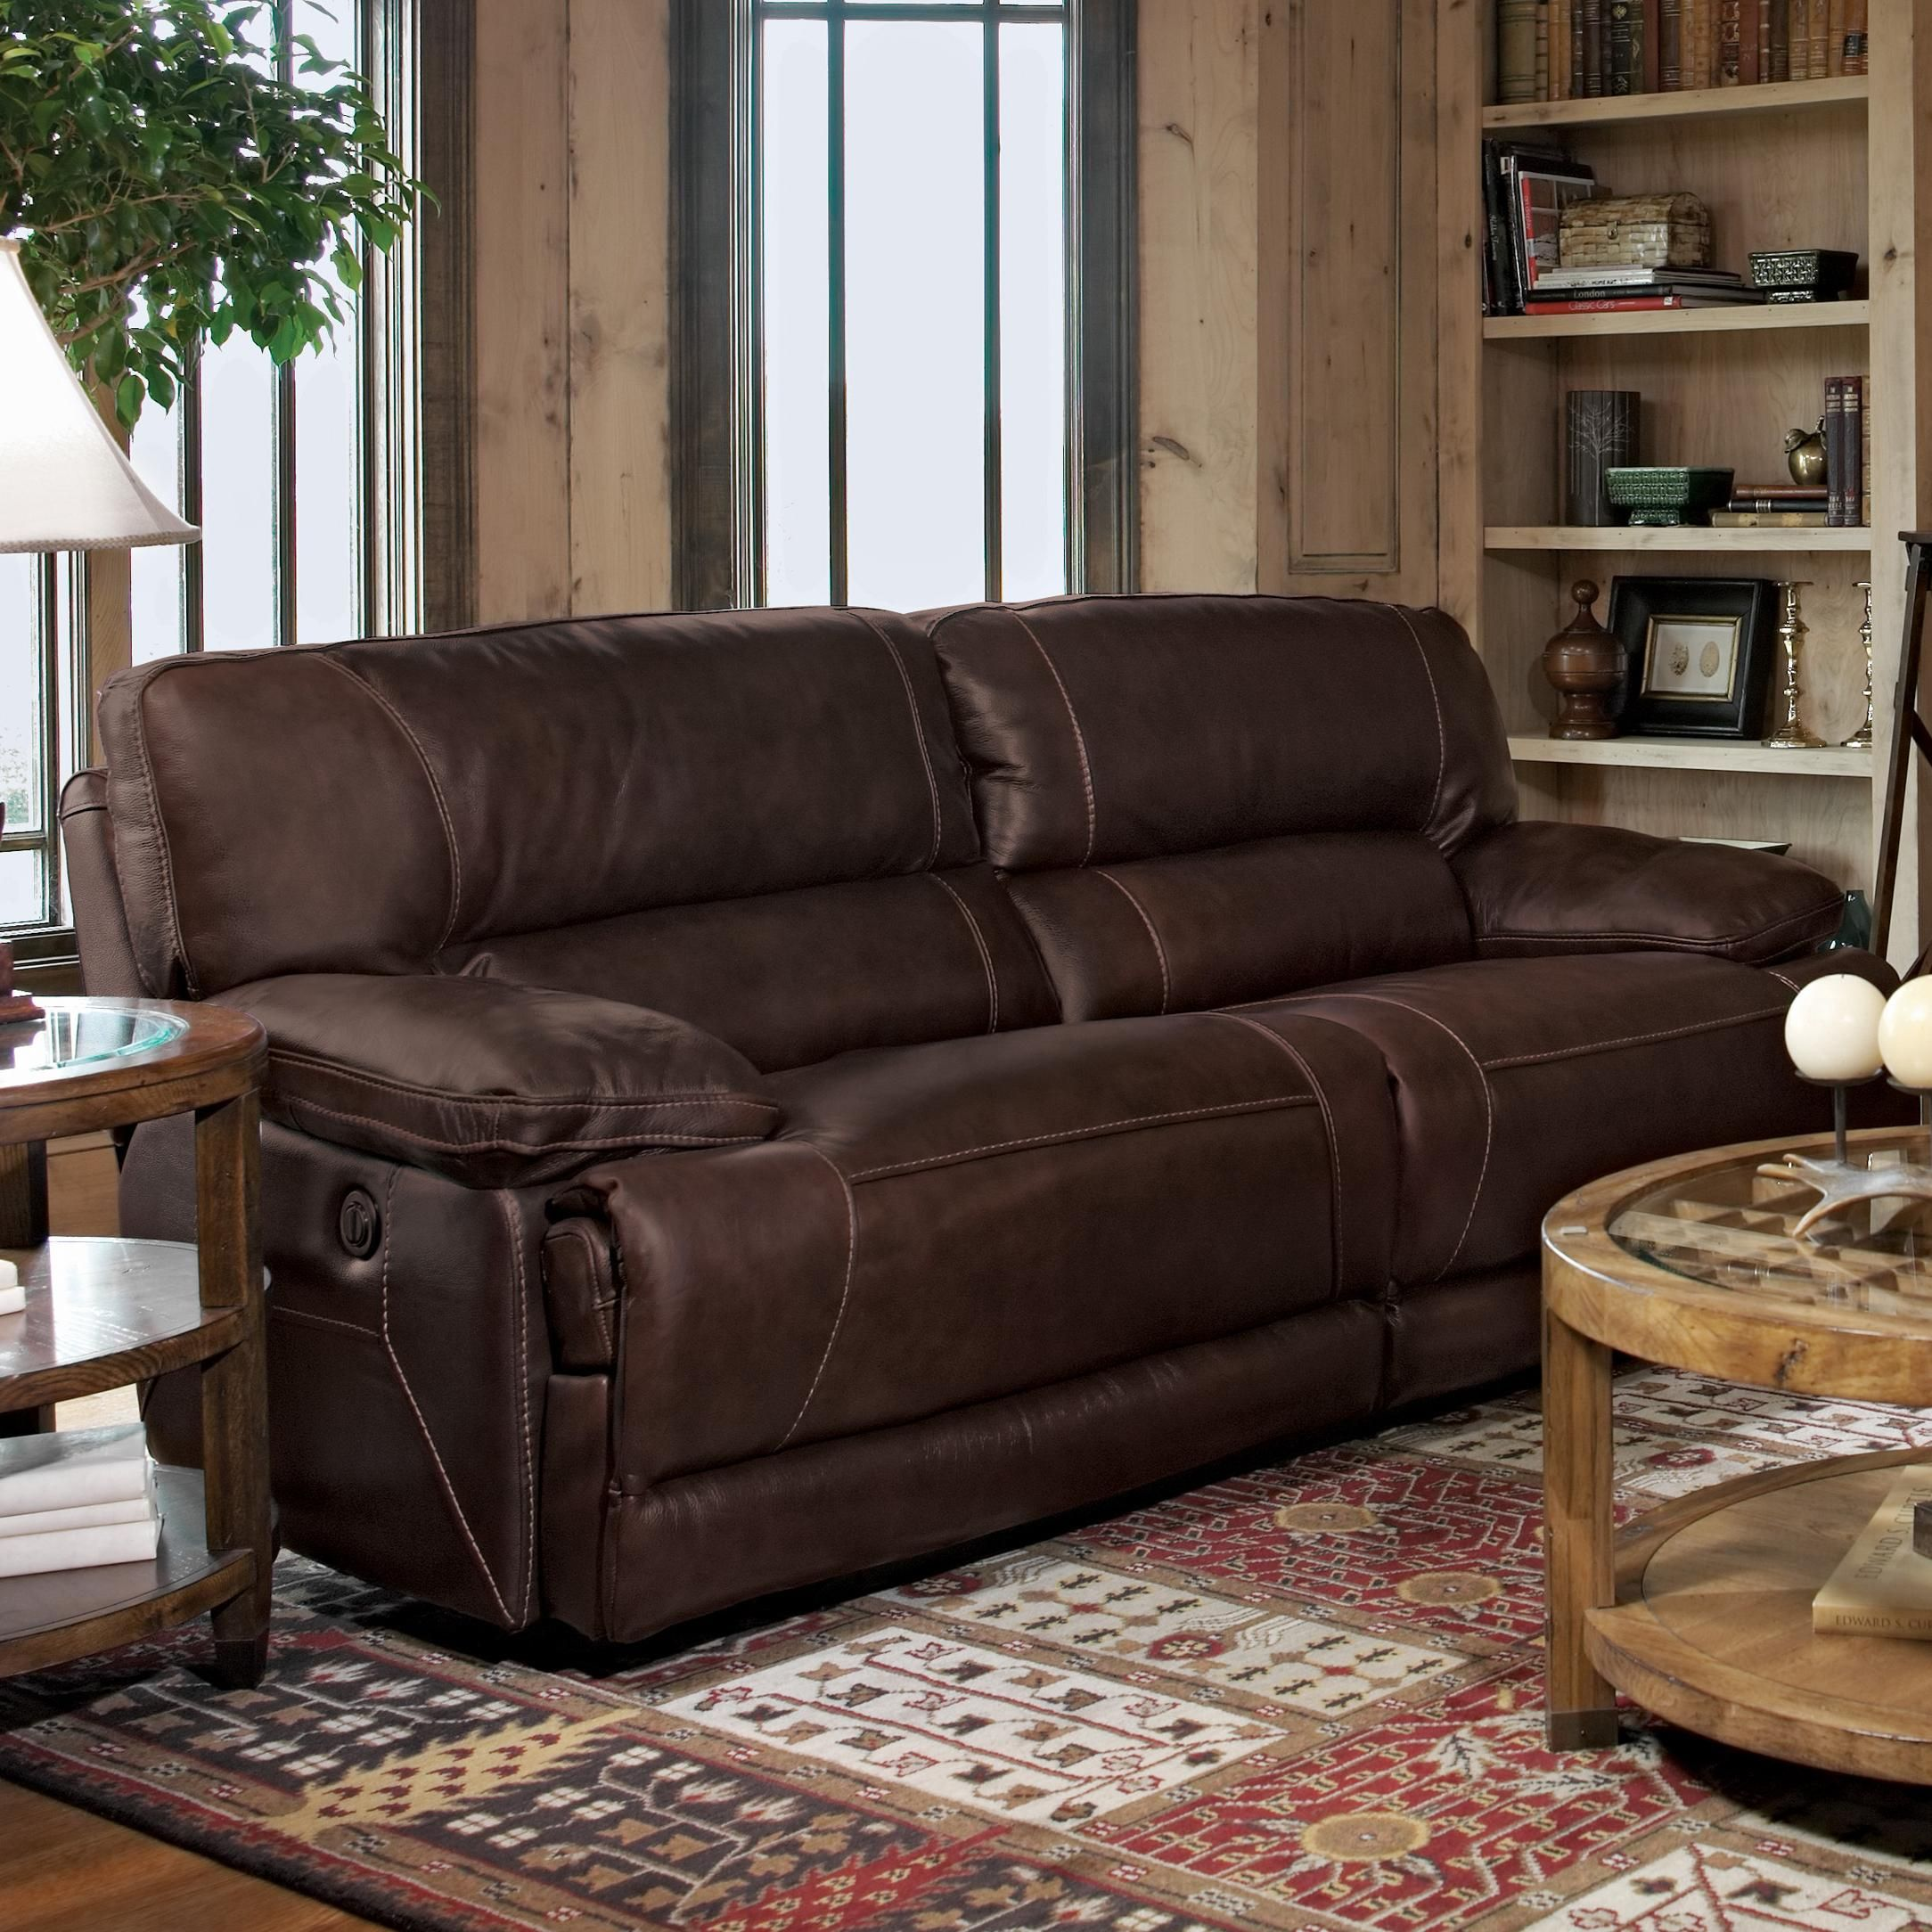 Stupendous Pin By Sofascouch On Modern Sofa In 2018 Sofa Reclining Ibusinesslaw Wood Chair Design Ideas Ibusinesslaworg